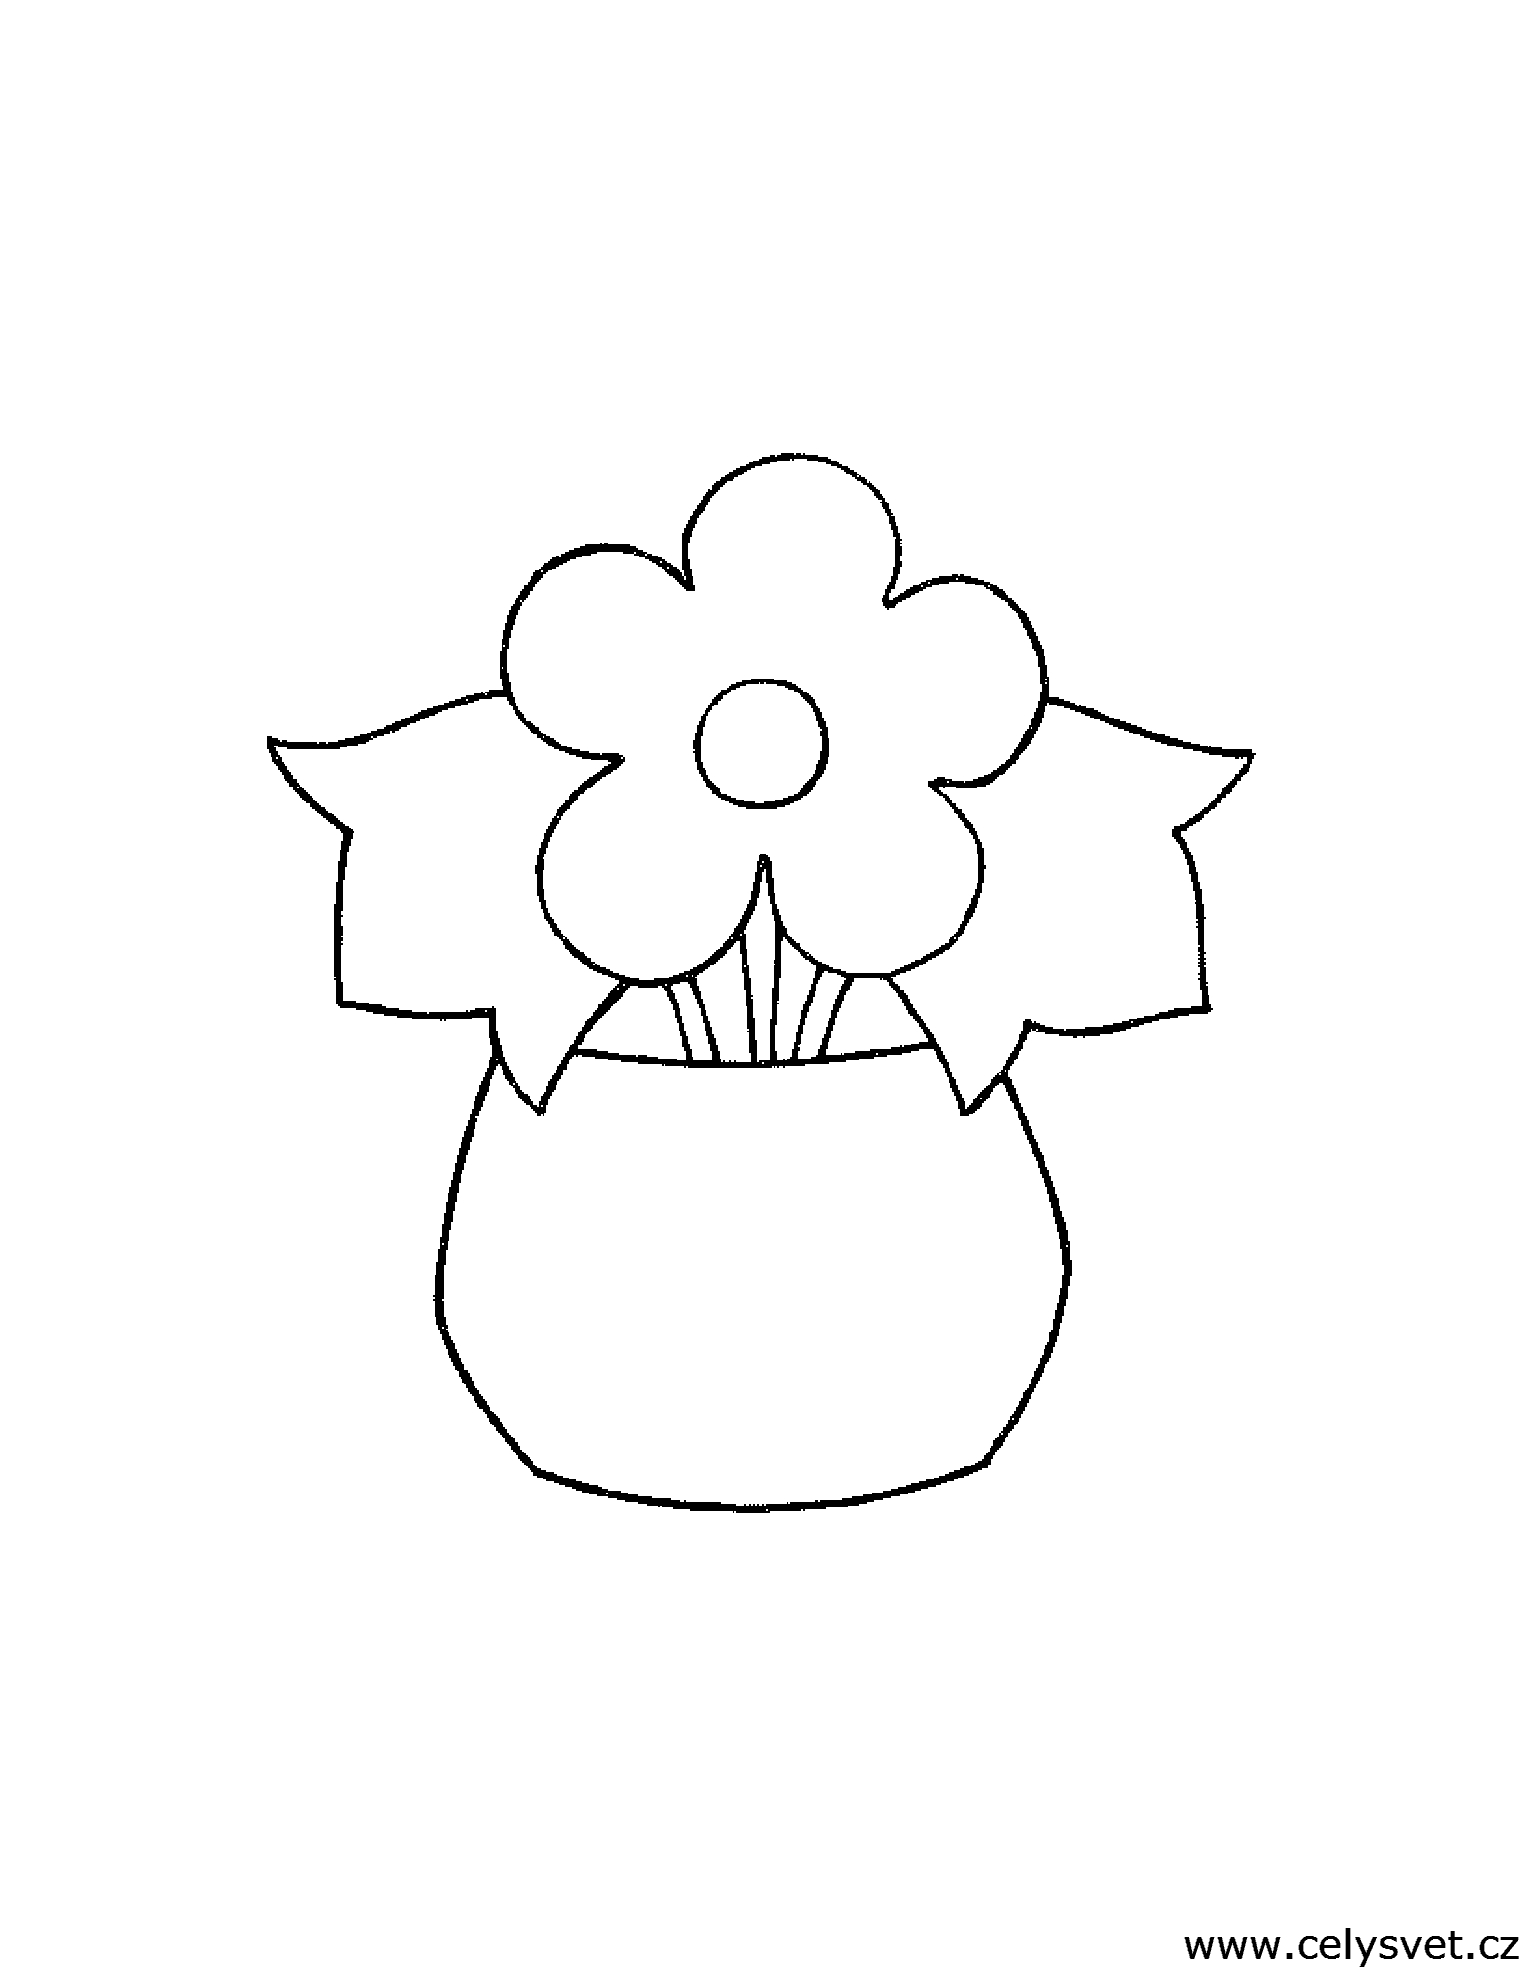 globe coloring page - coloring pages print c=276